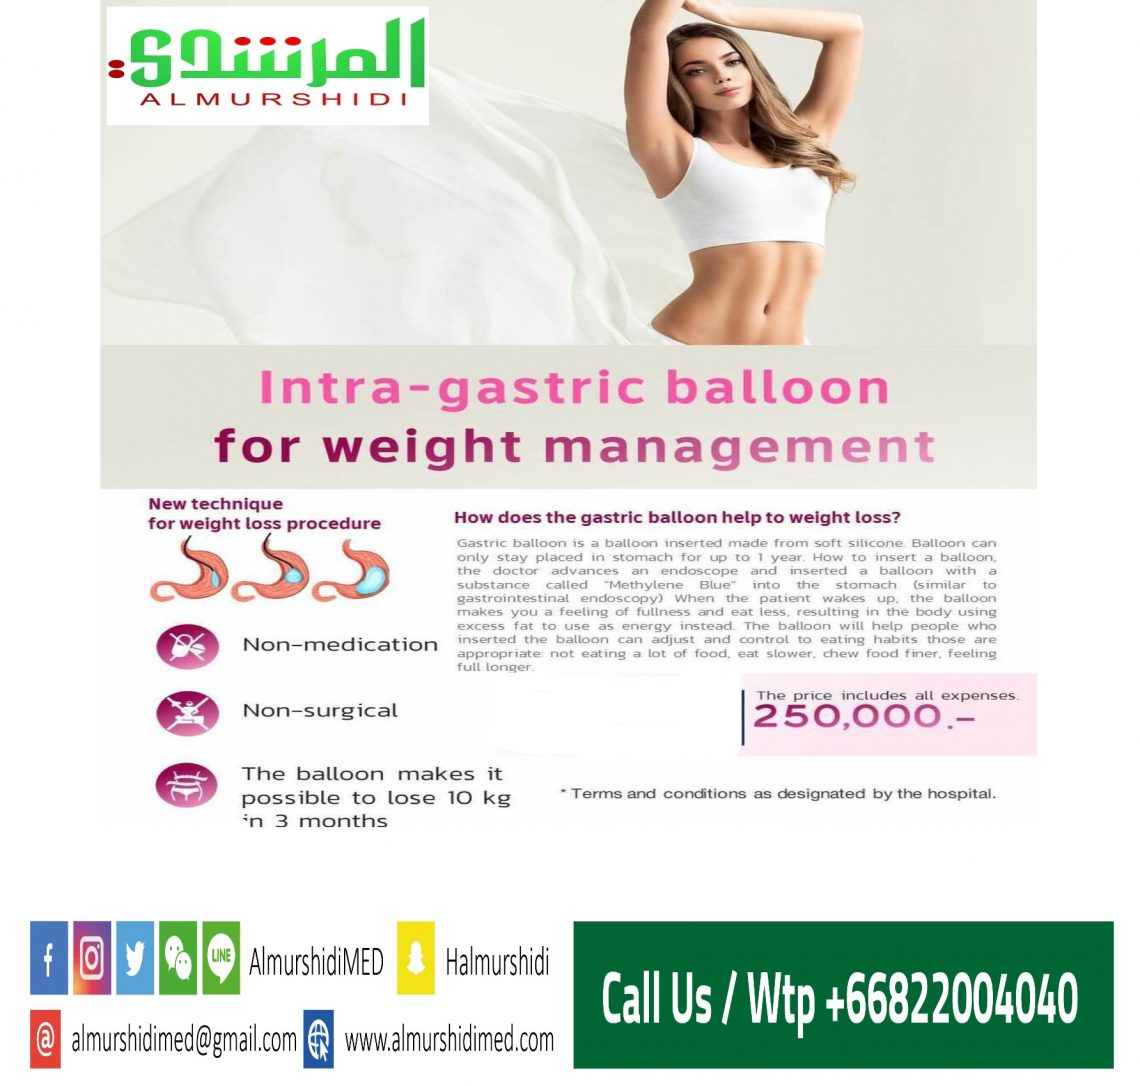 Intragastric Balloon for Weight Management in Thailand